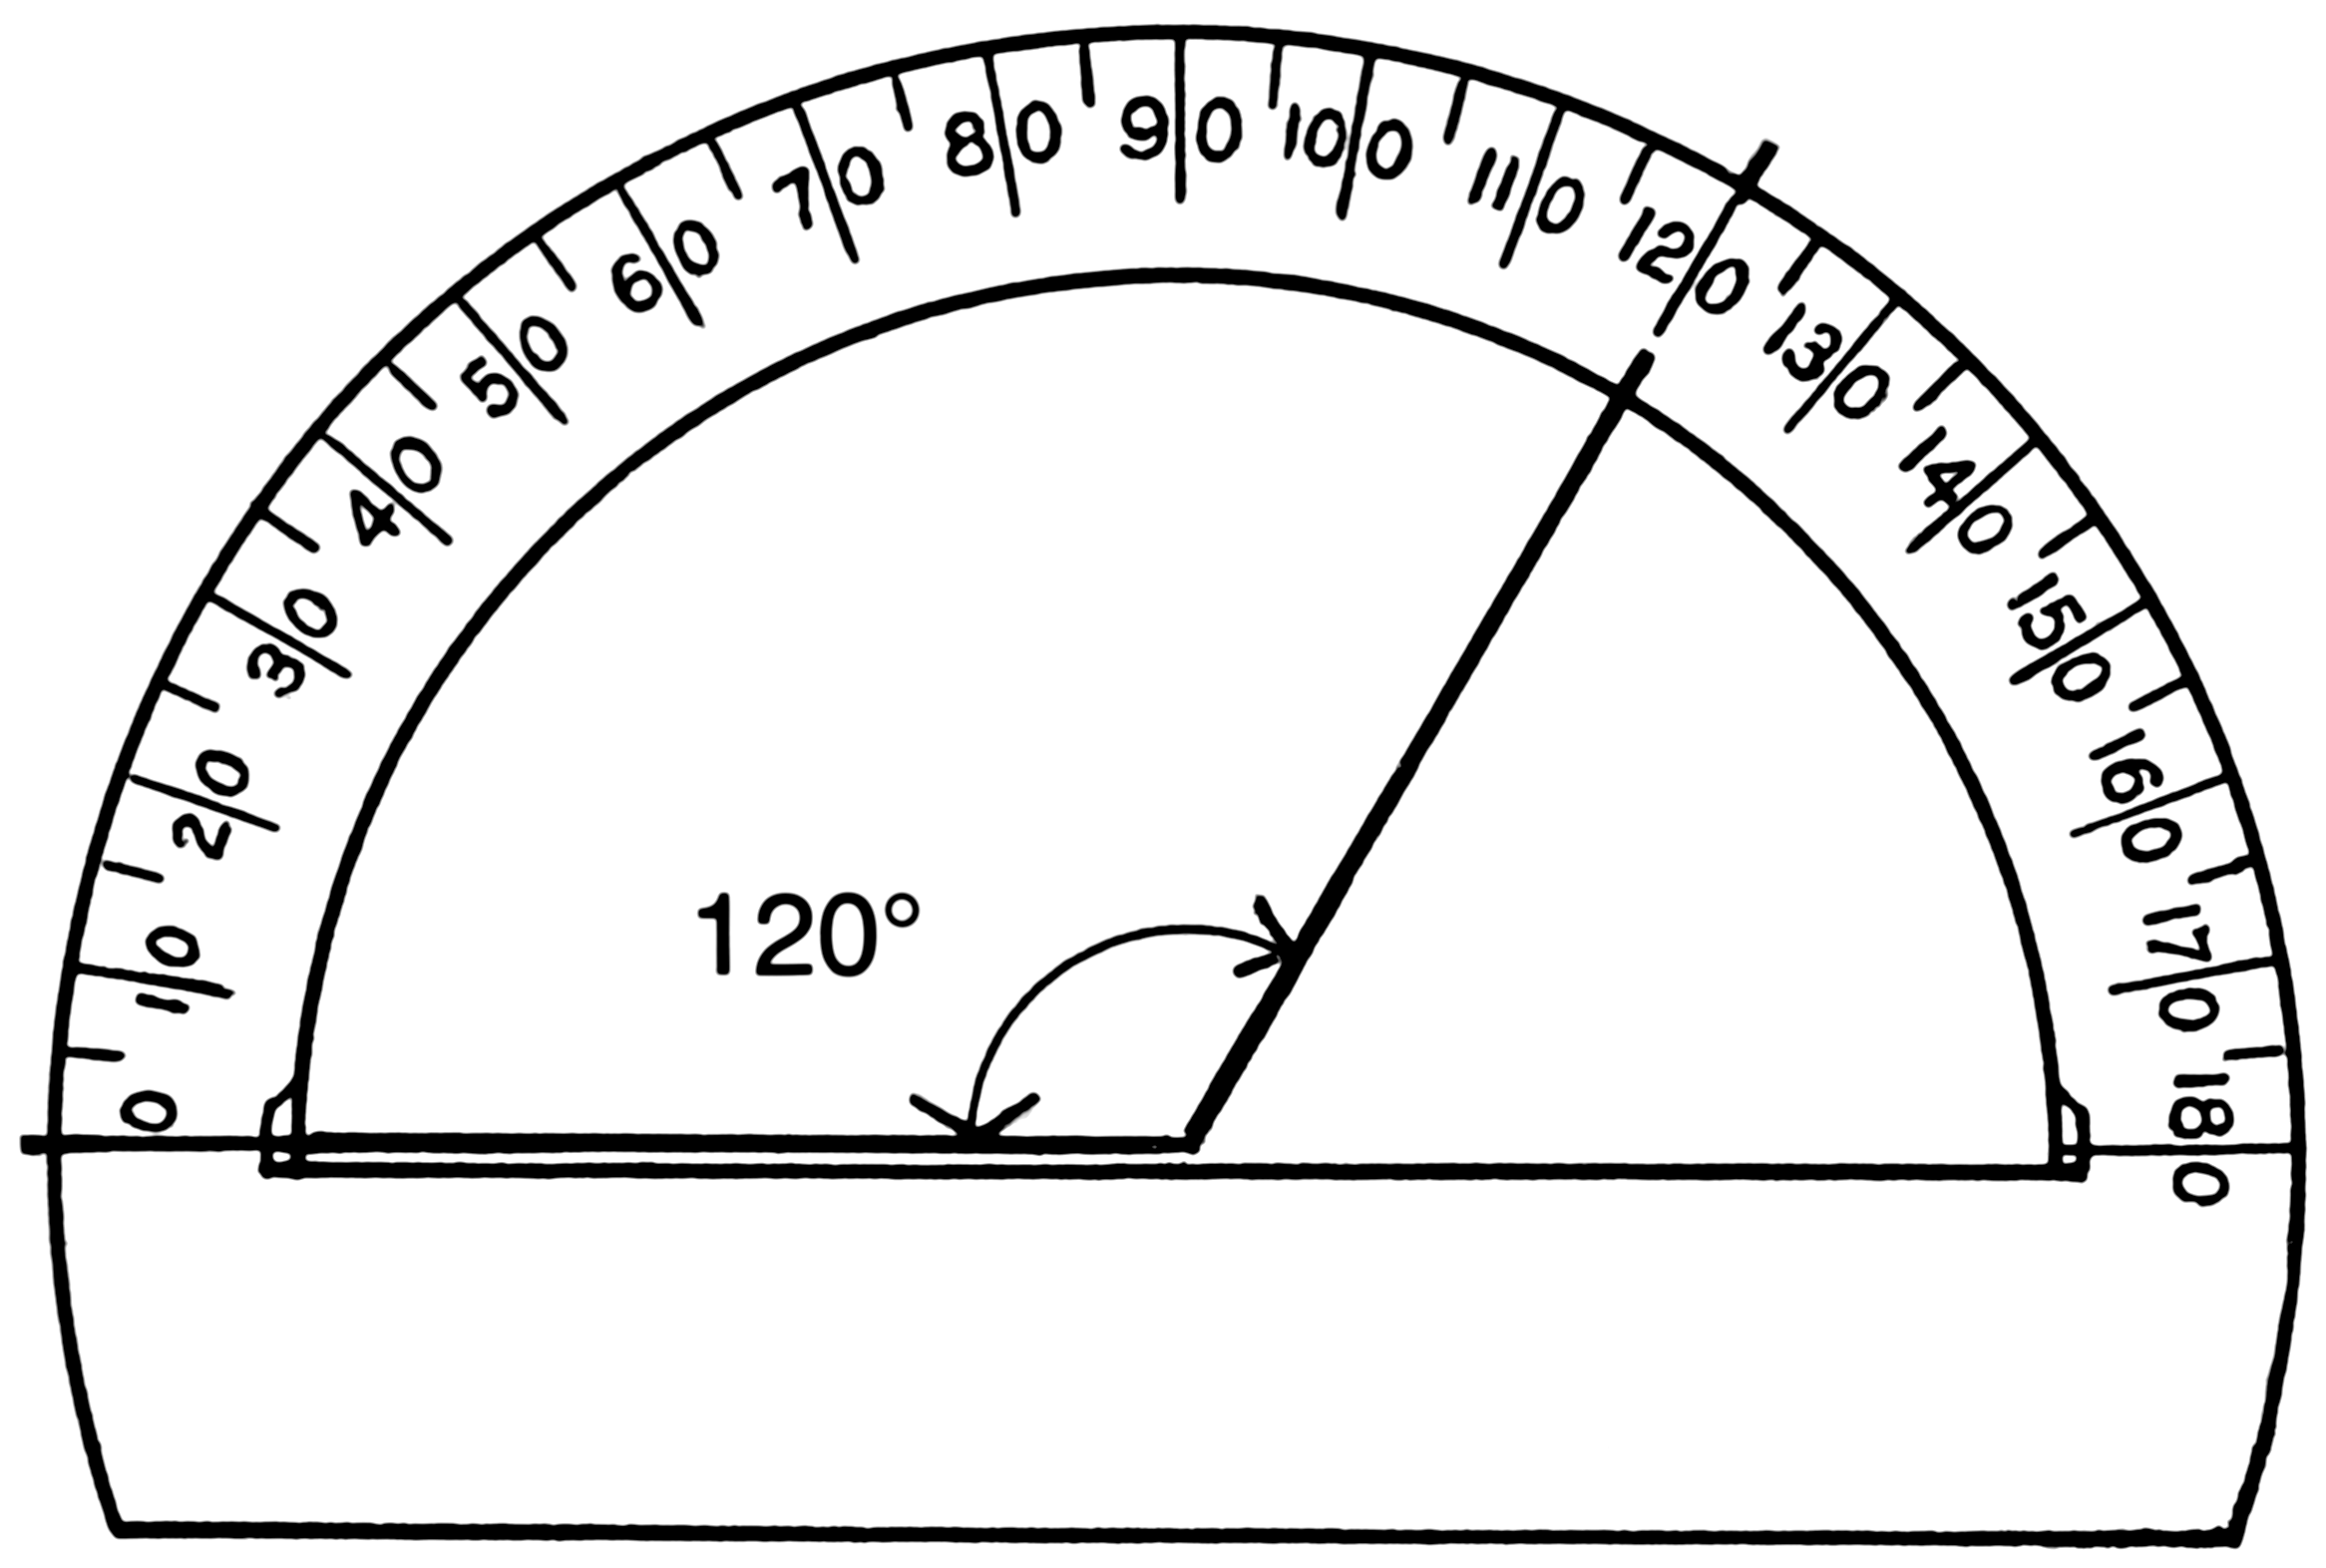 worksheet Protractor Image protractor actual size clipart panda free images